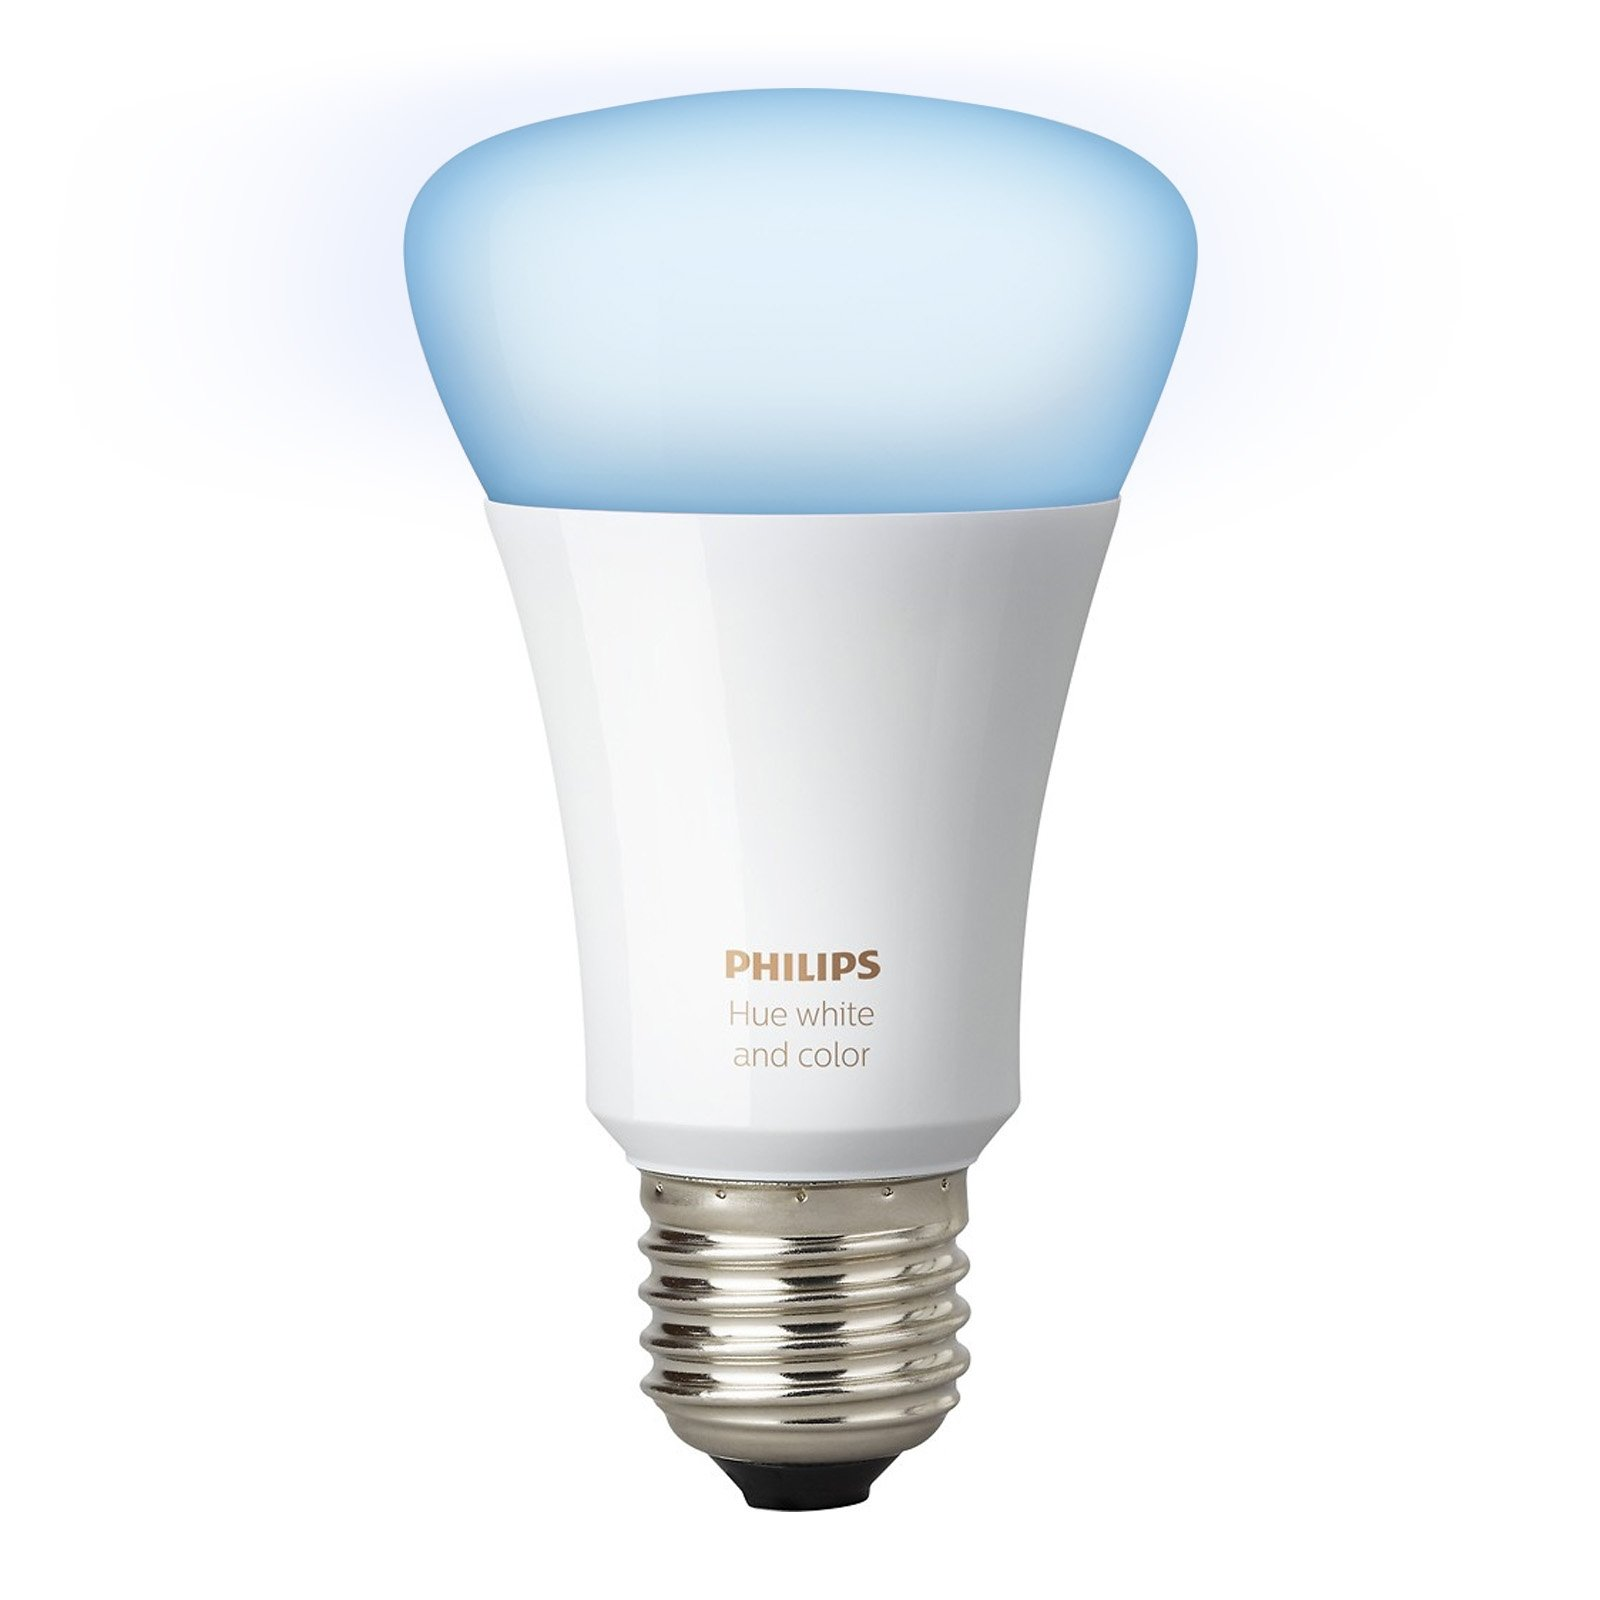 Philips Hue White and Color Ambiance 3rd Generation A19 10W Equivalent Dimmable LED Smart Bulb (Renewed) by Philips (Image #3)